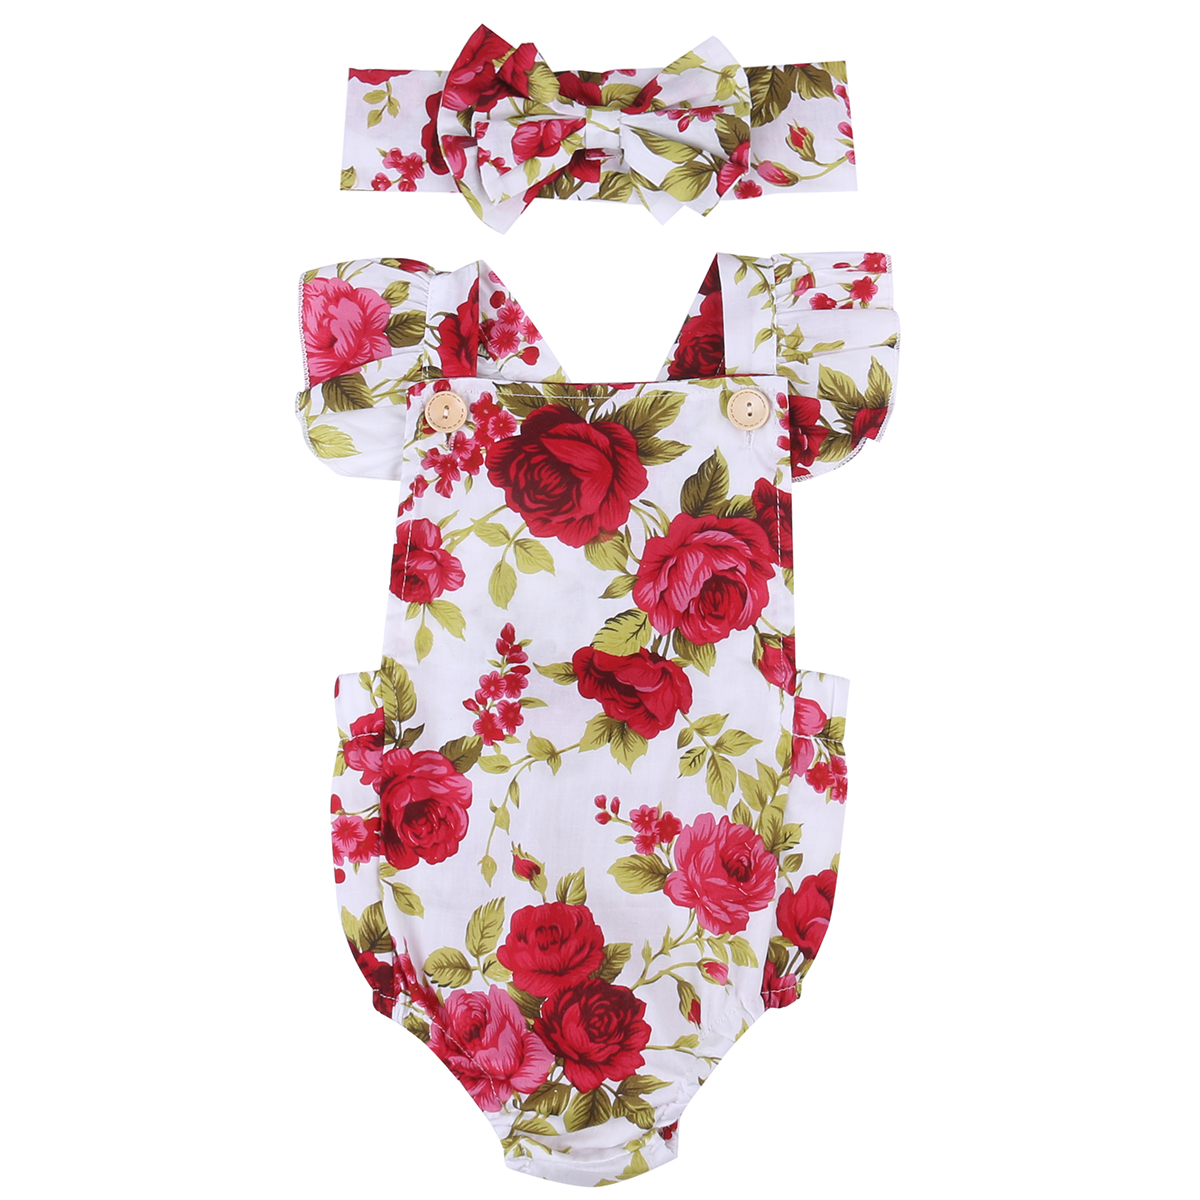 2017 Floral Baby Romper Newborn Baby Girl Clothes Ruffles Sleeve Bodysuit +Headband 2pcs Outfit Bebek Giyim Sunsuit 0-24M 4pcs set newborn baby clothes infant bebes short sleeve mini mama bodysuit romper headband gold heart striped leg warmer outfit